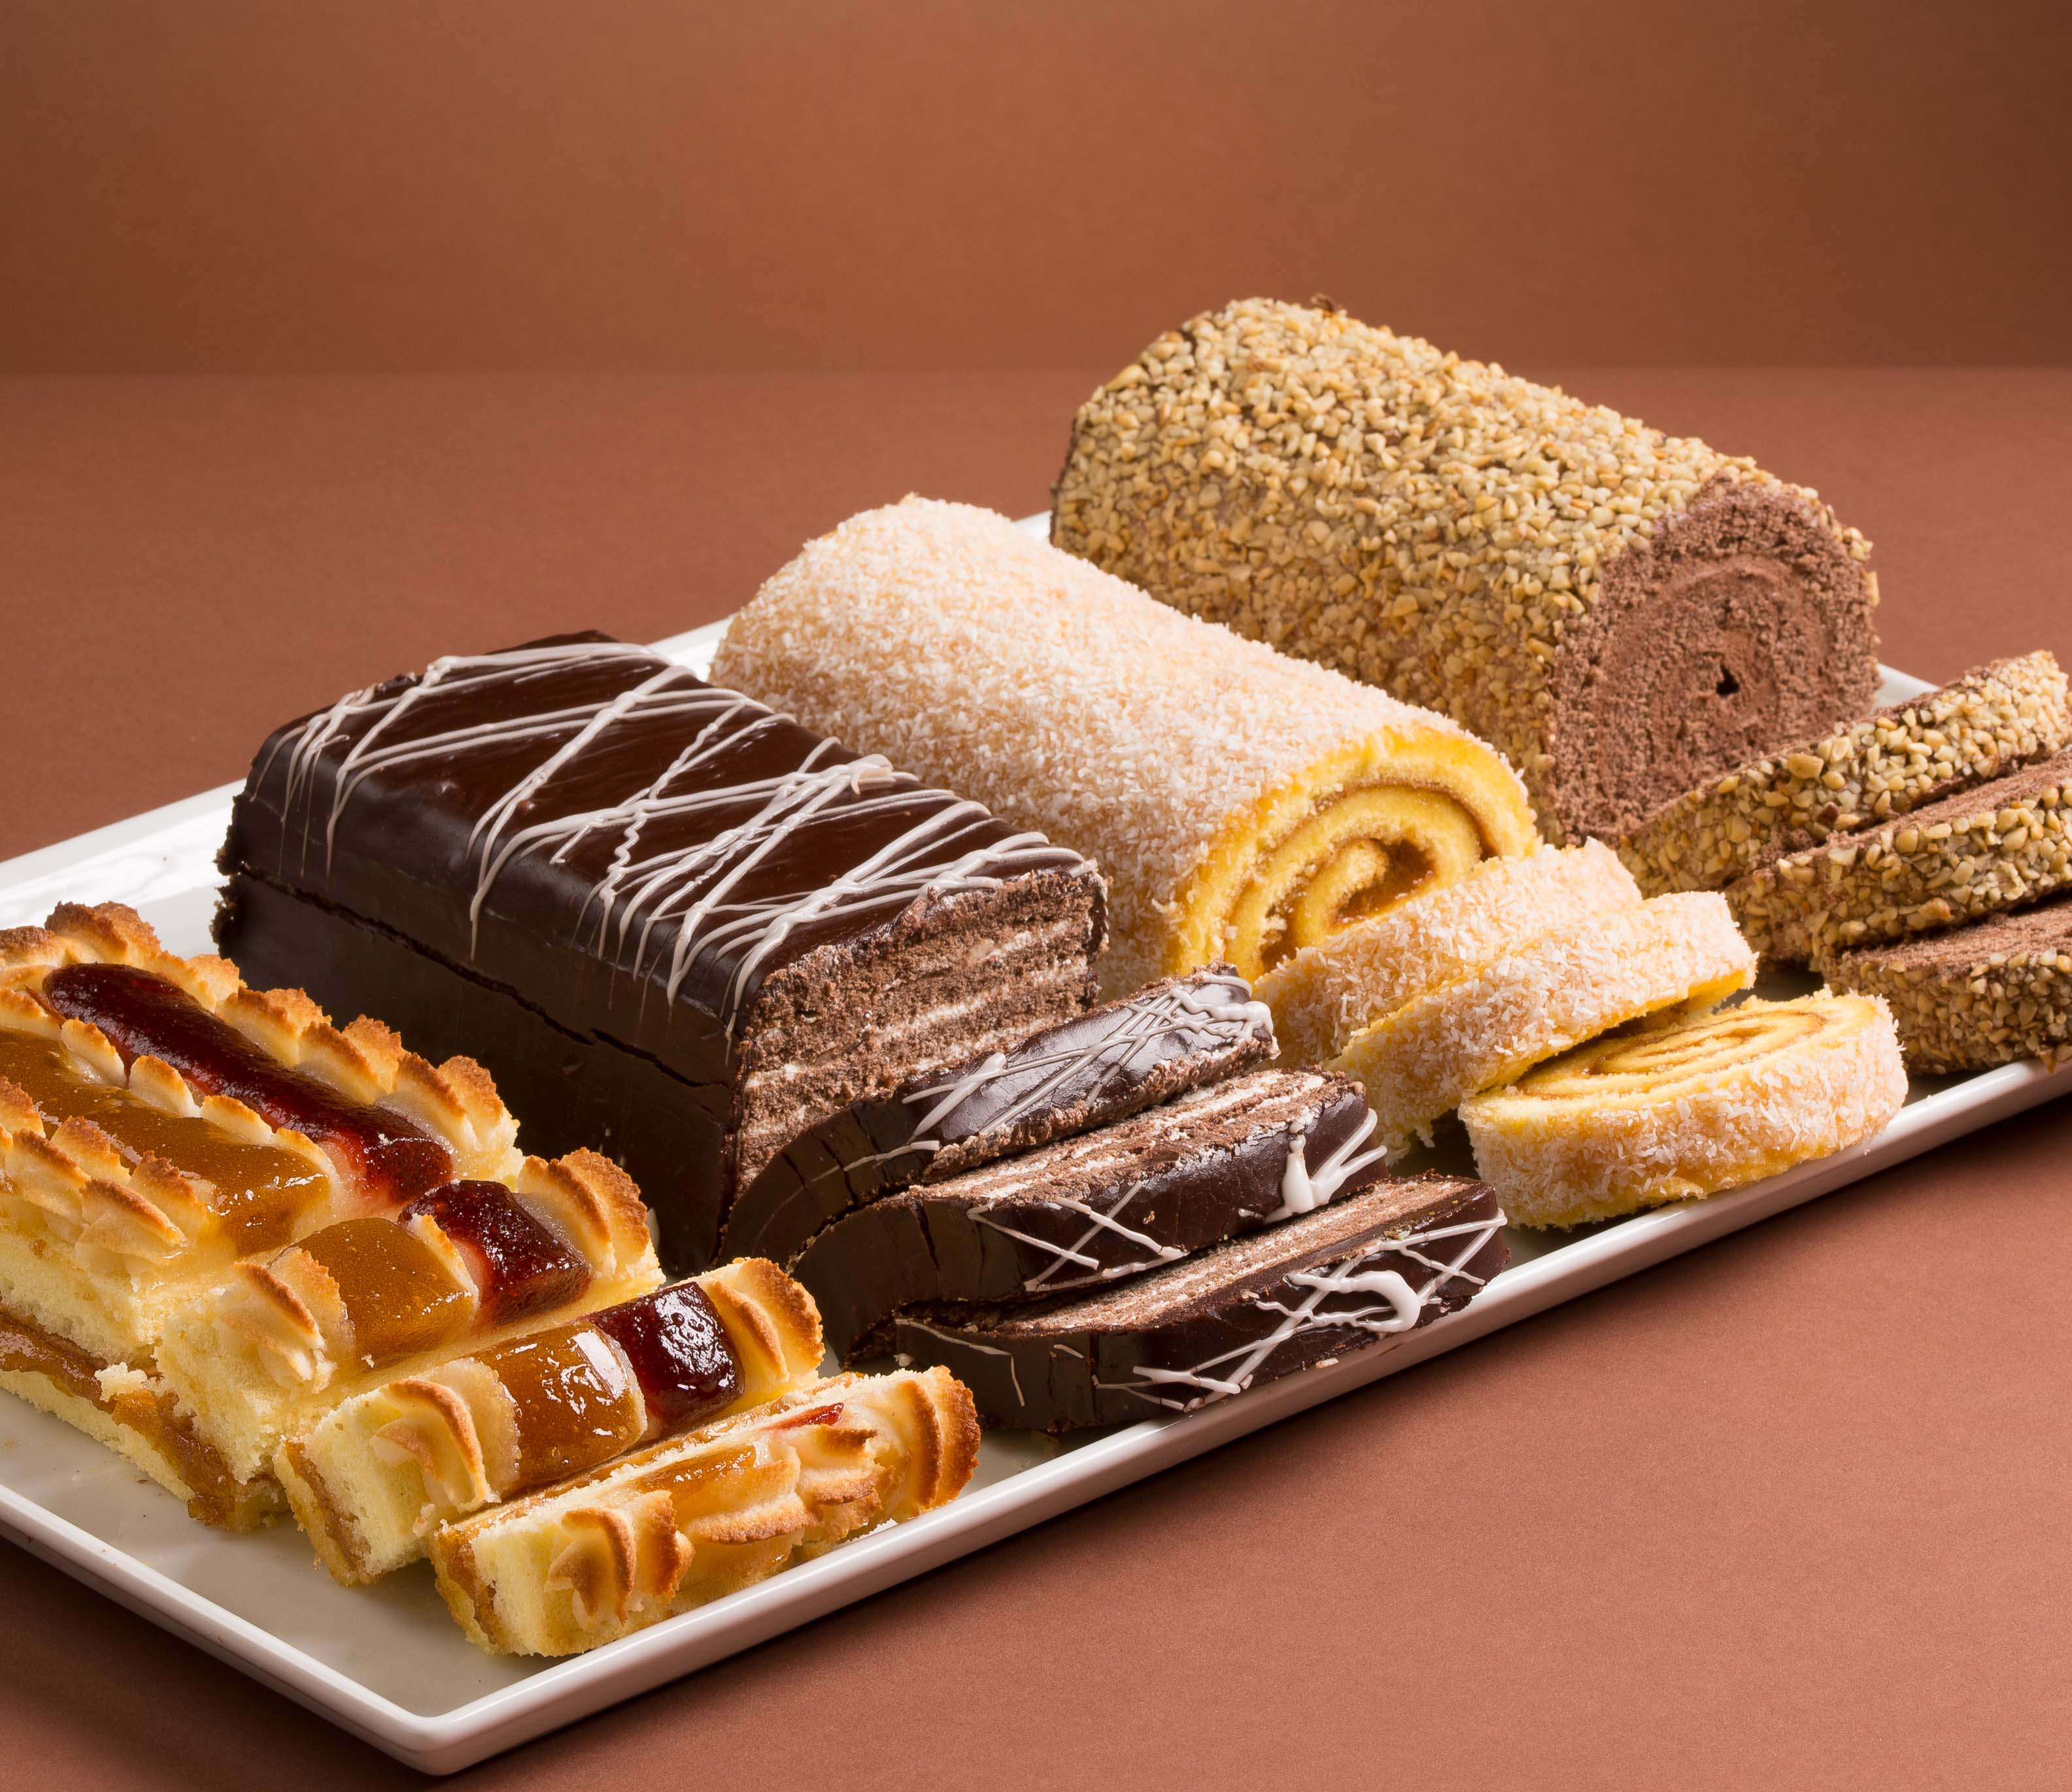 kapila bakers and sweet house quality bakery foods